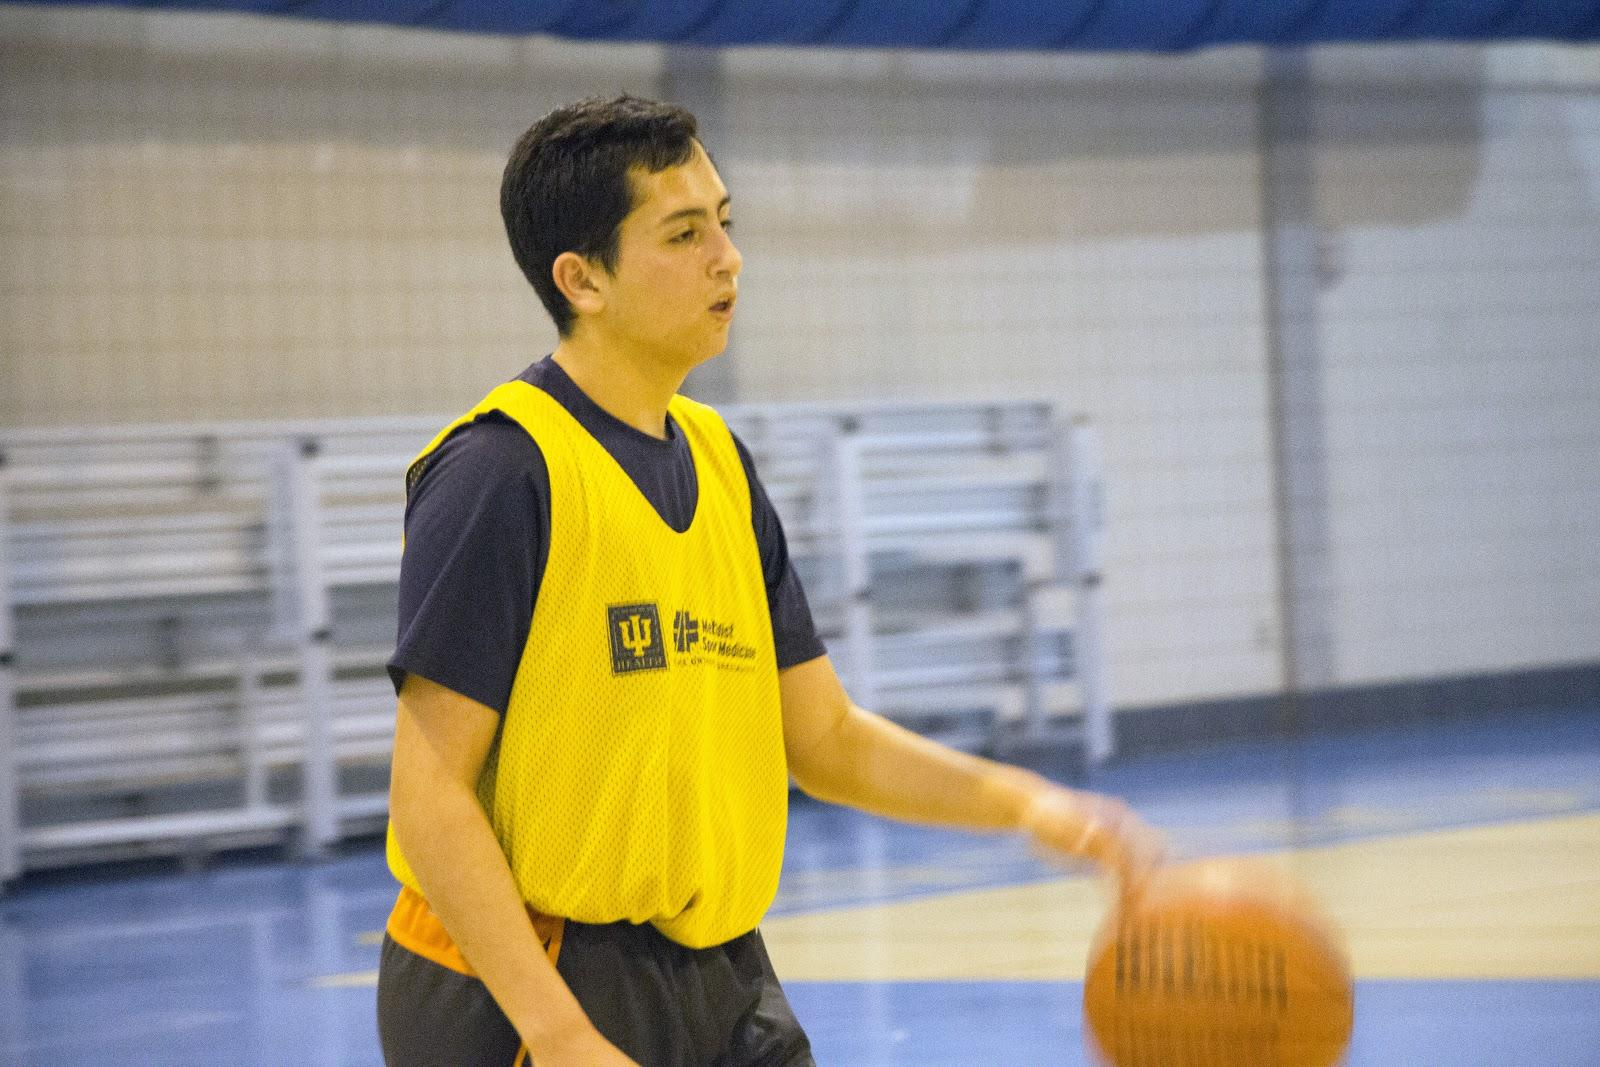 Hayden Silverman, intramural player and junior, participates in a intramural game on Feb. 6. Silverman's team is one of 42 participating in the intramural program this year.